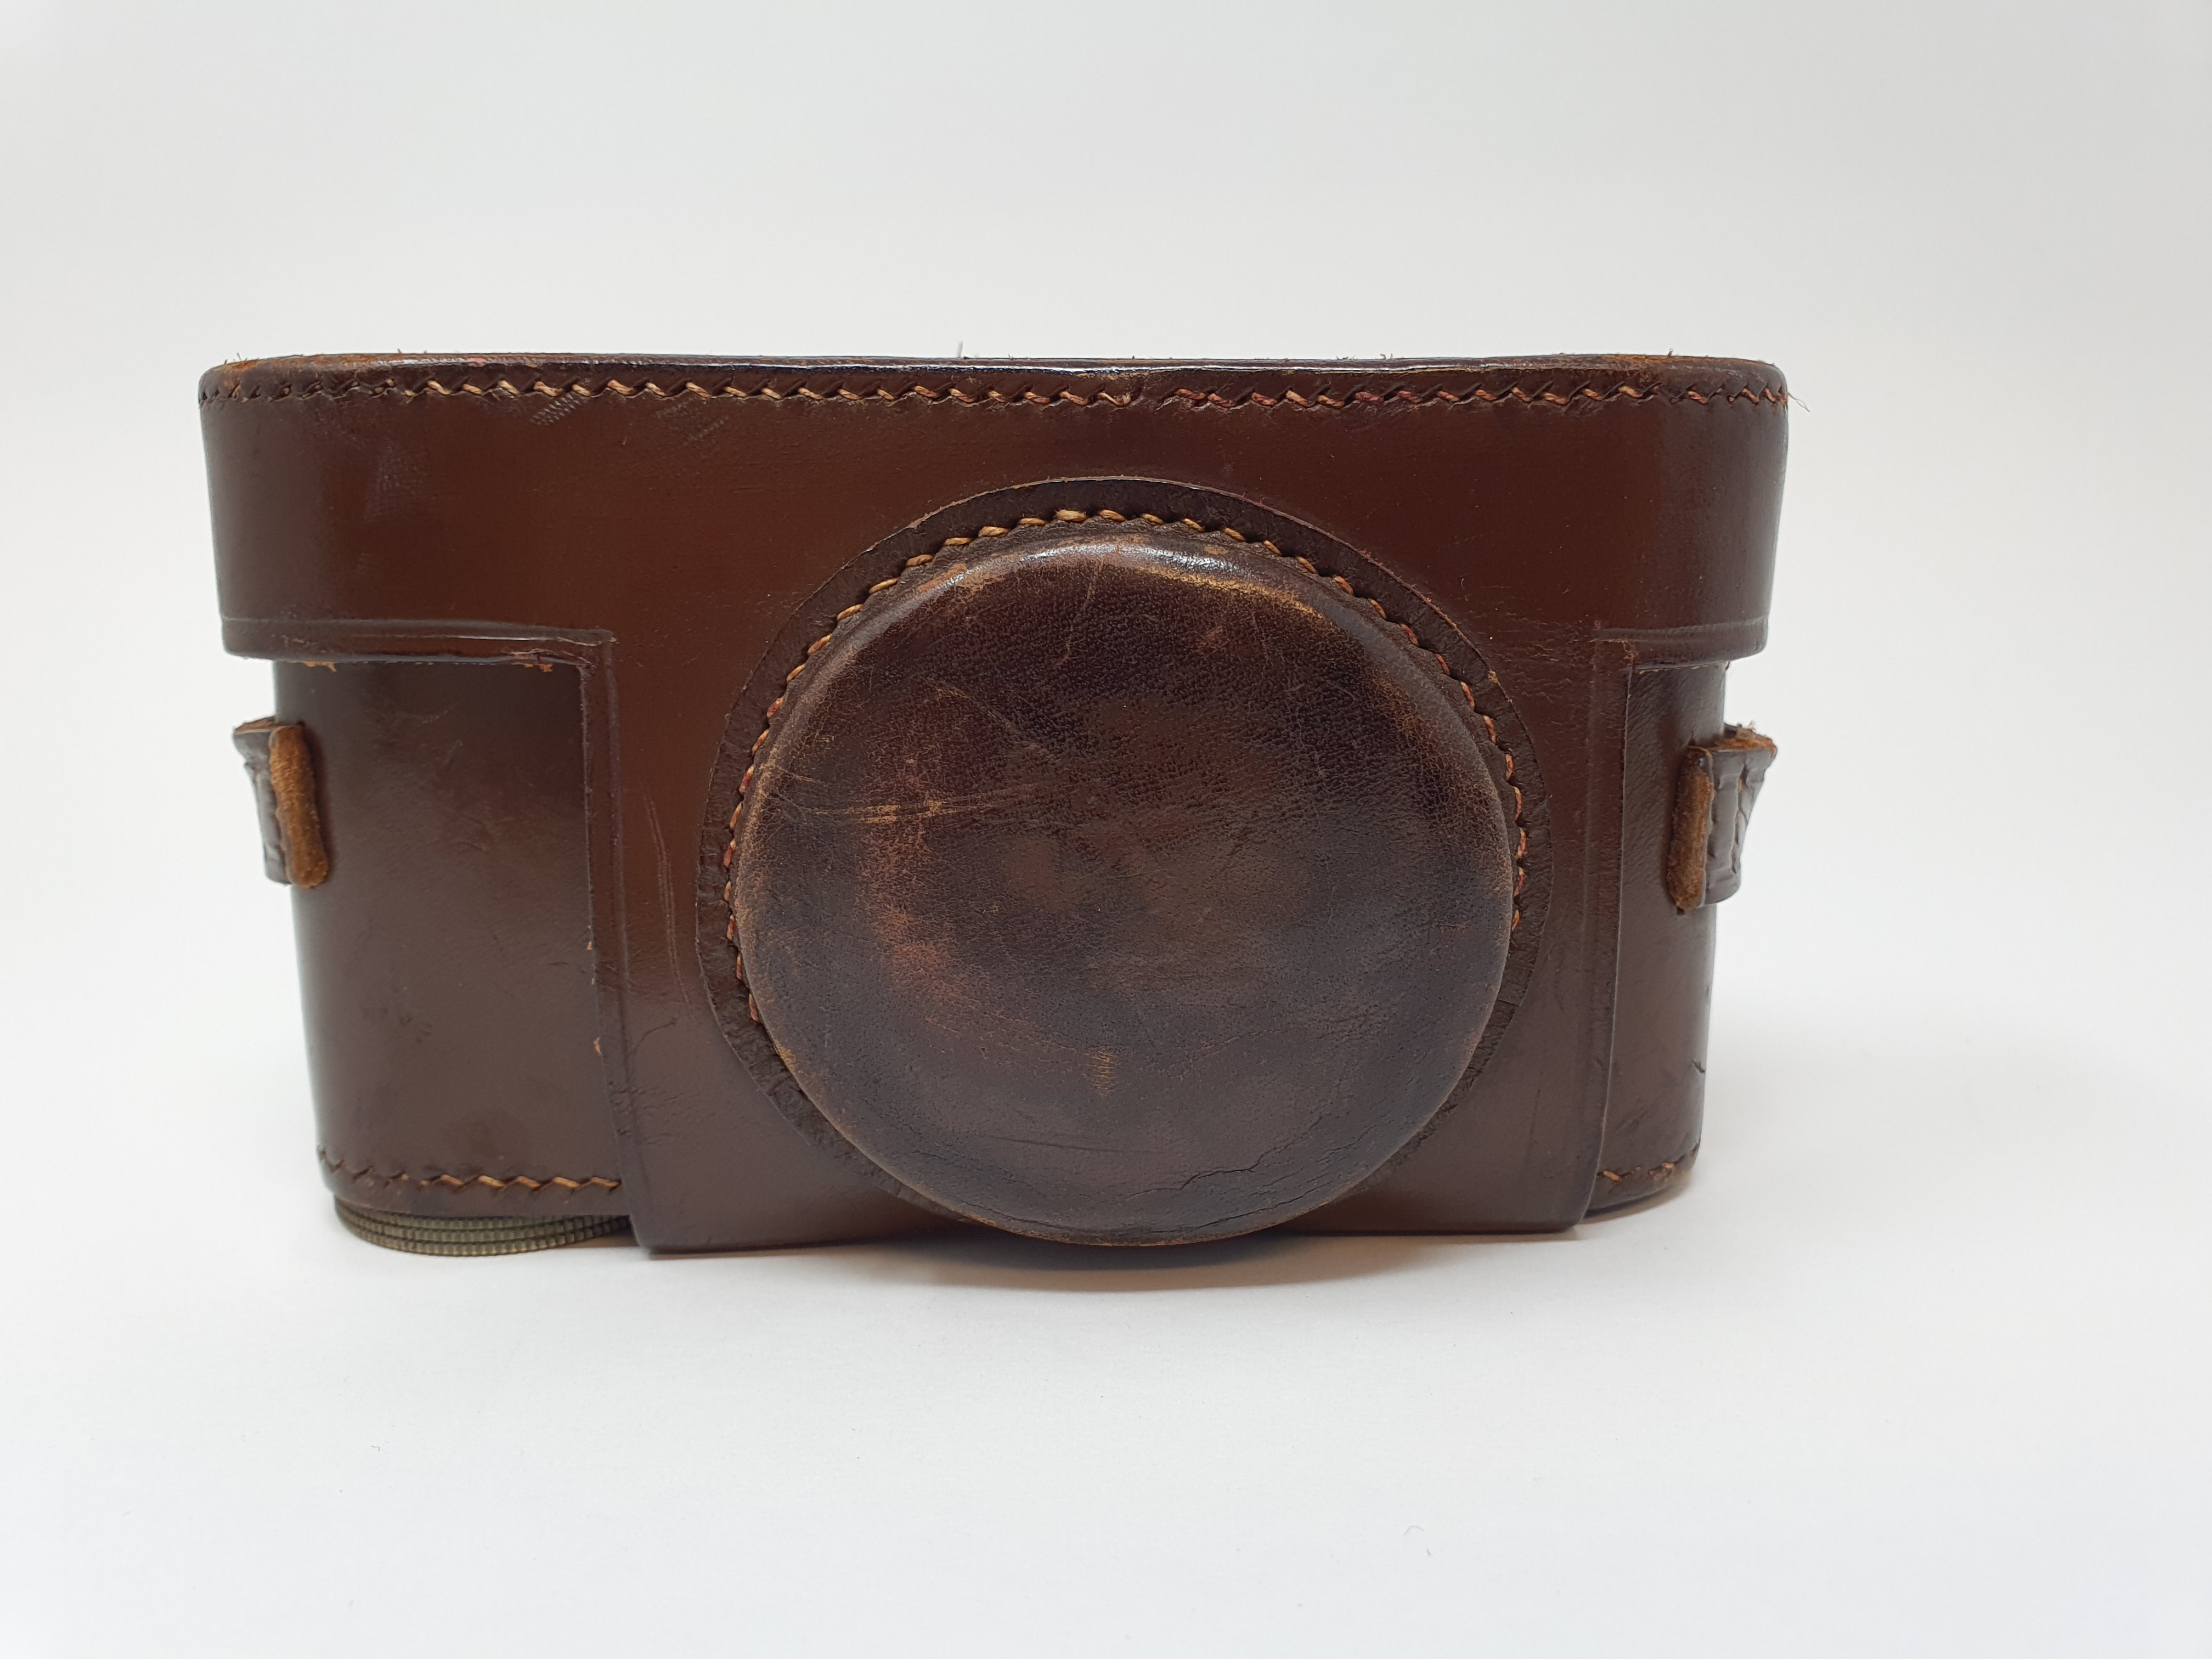 A Leica II camera, serial number 108206, with leather outer case Provenance: Part of a vast single - Image 3 of 4